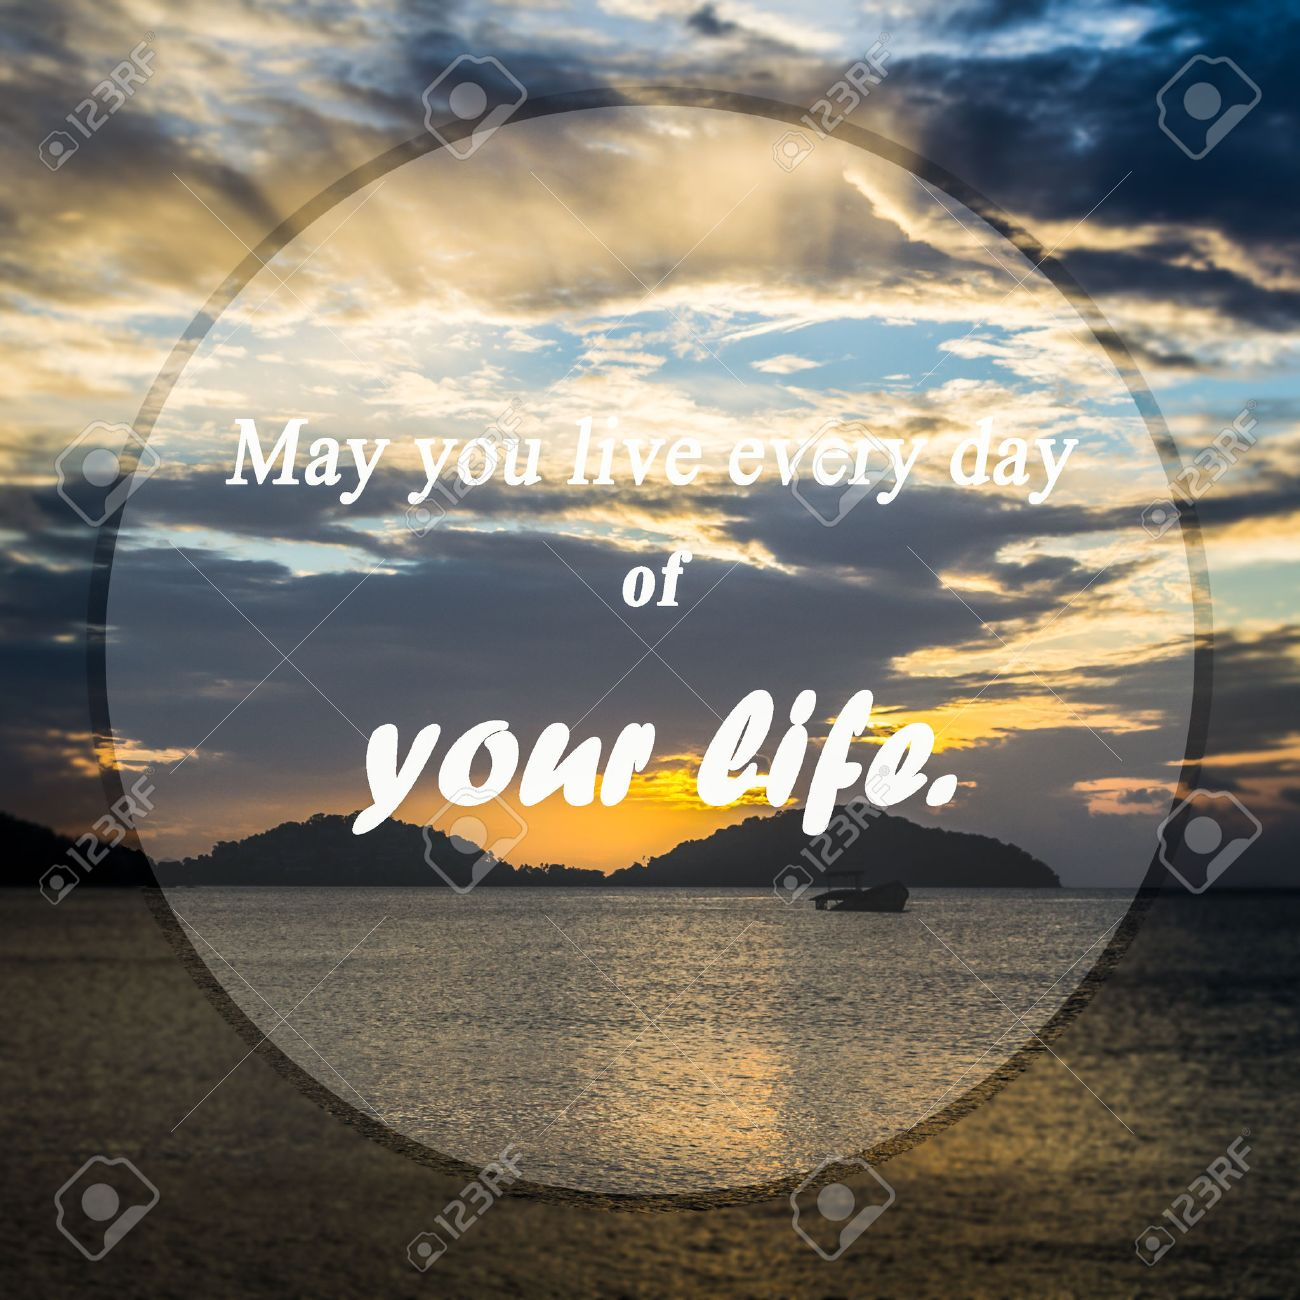 meaningful quotes on the sea dramatic sky background